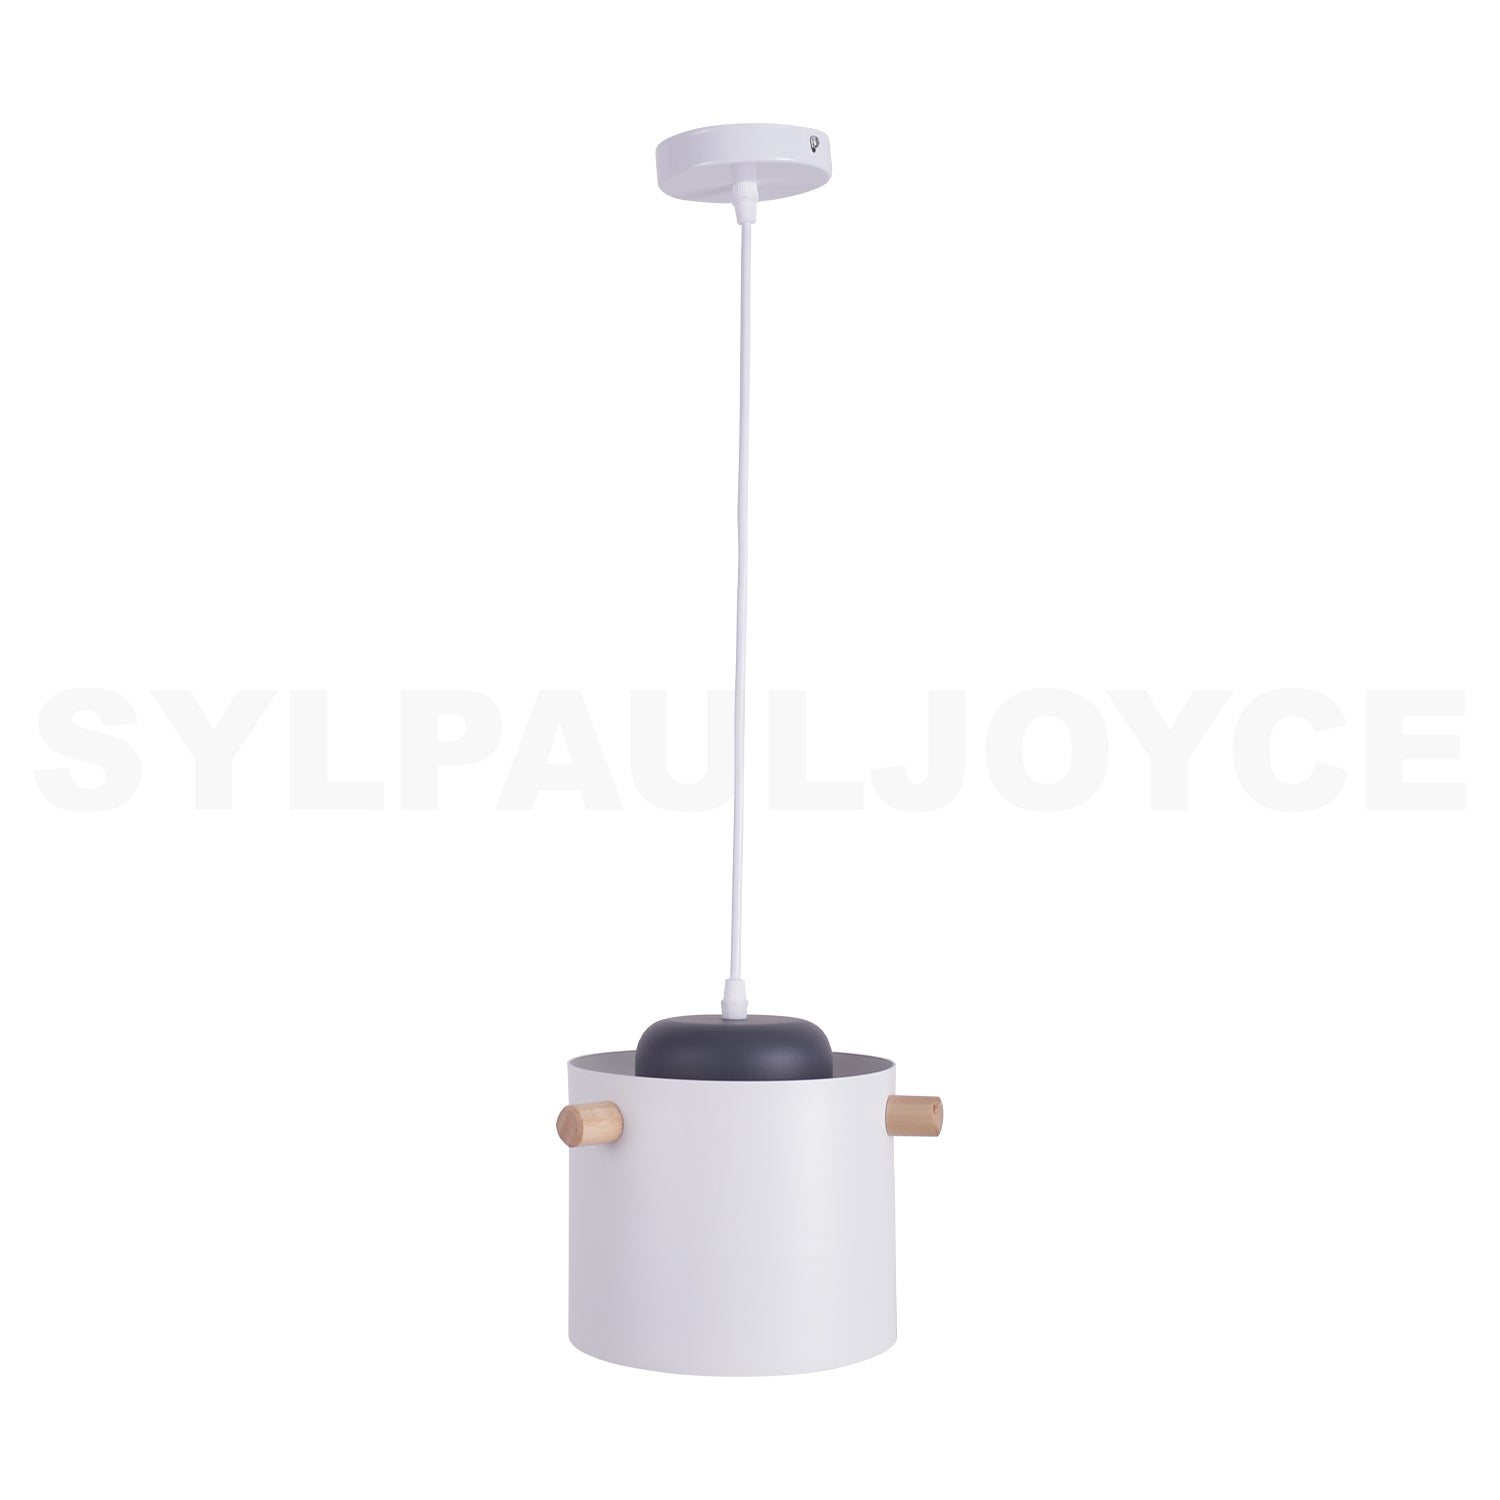 7337B-1 Drop Light - Sylpauljoyce Furniture, Lights & Decor